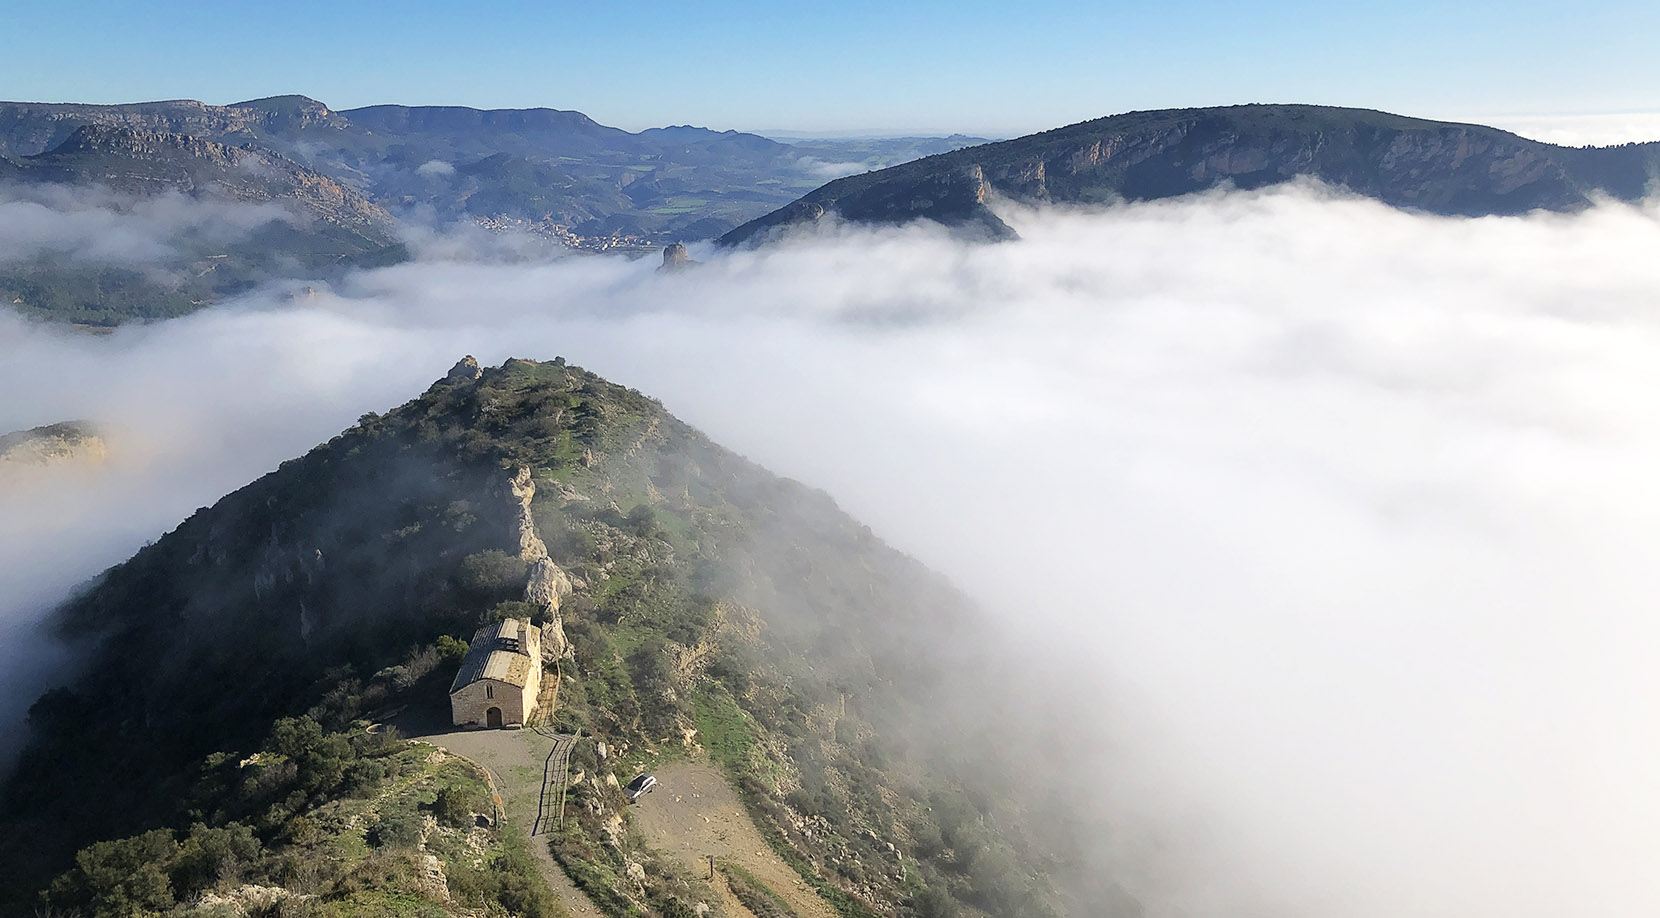 Hermitage of Castell above the fog that characterizes the area during the months of December and January #turismodeboira